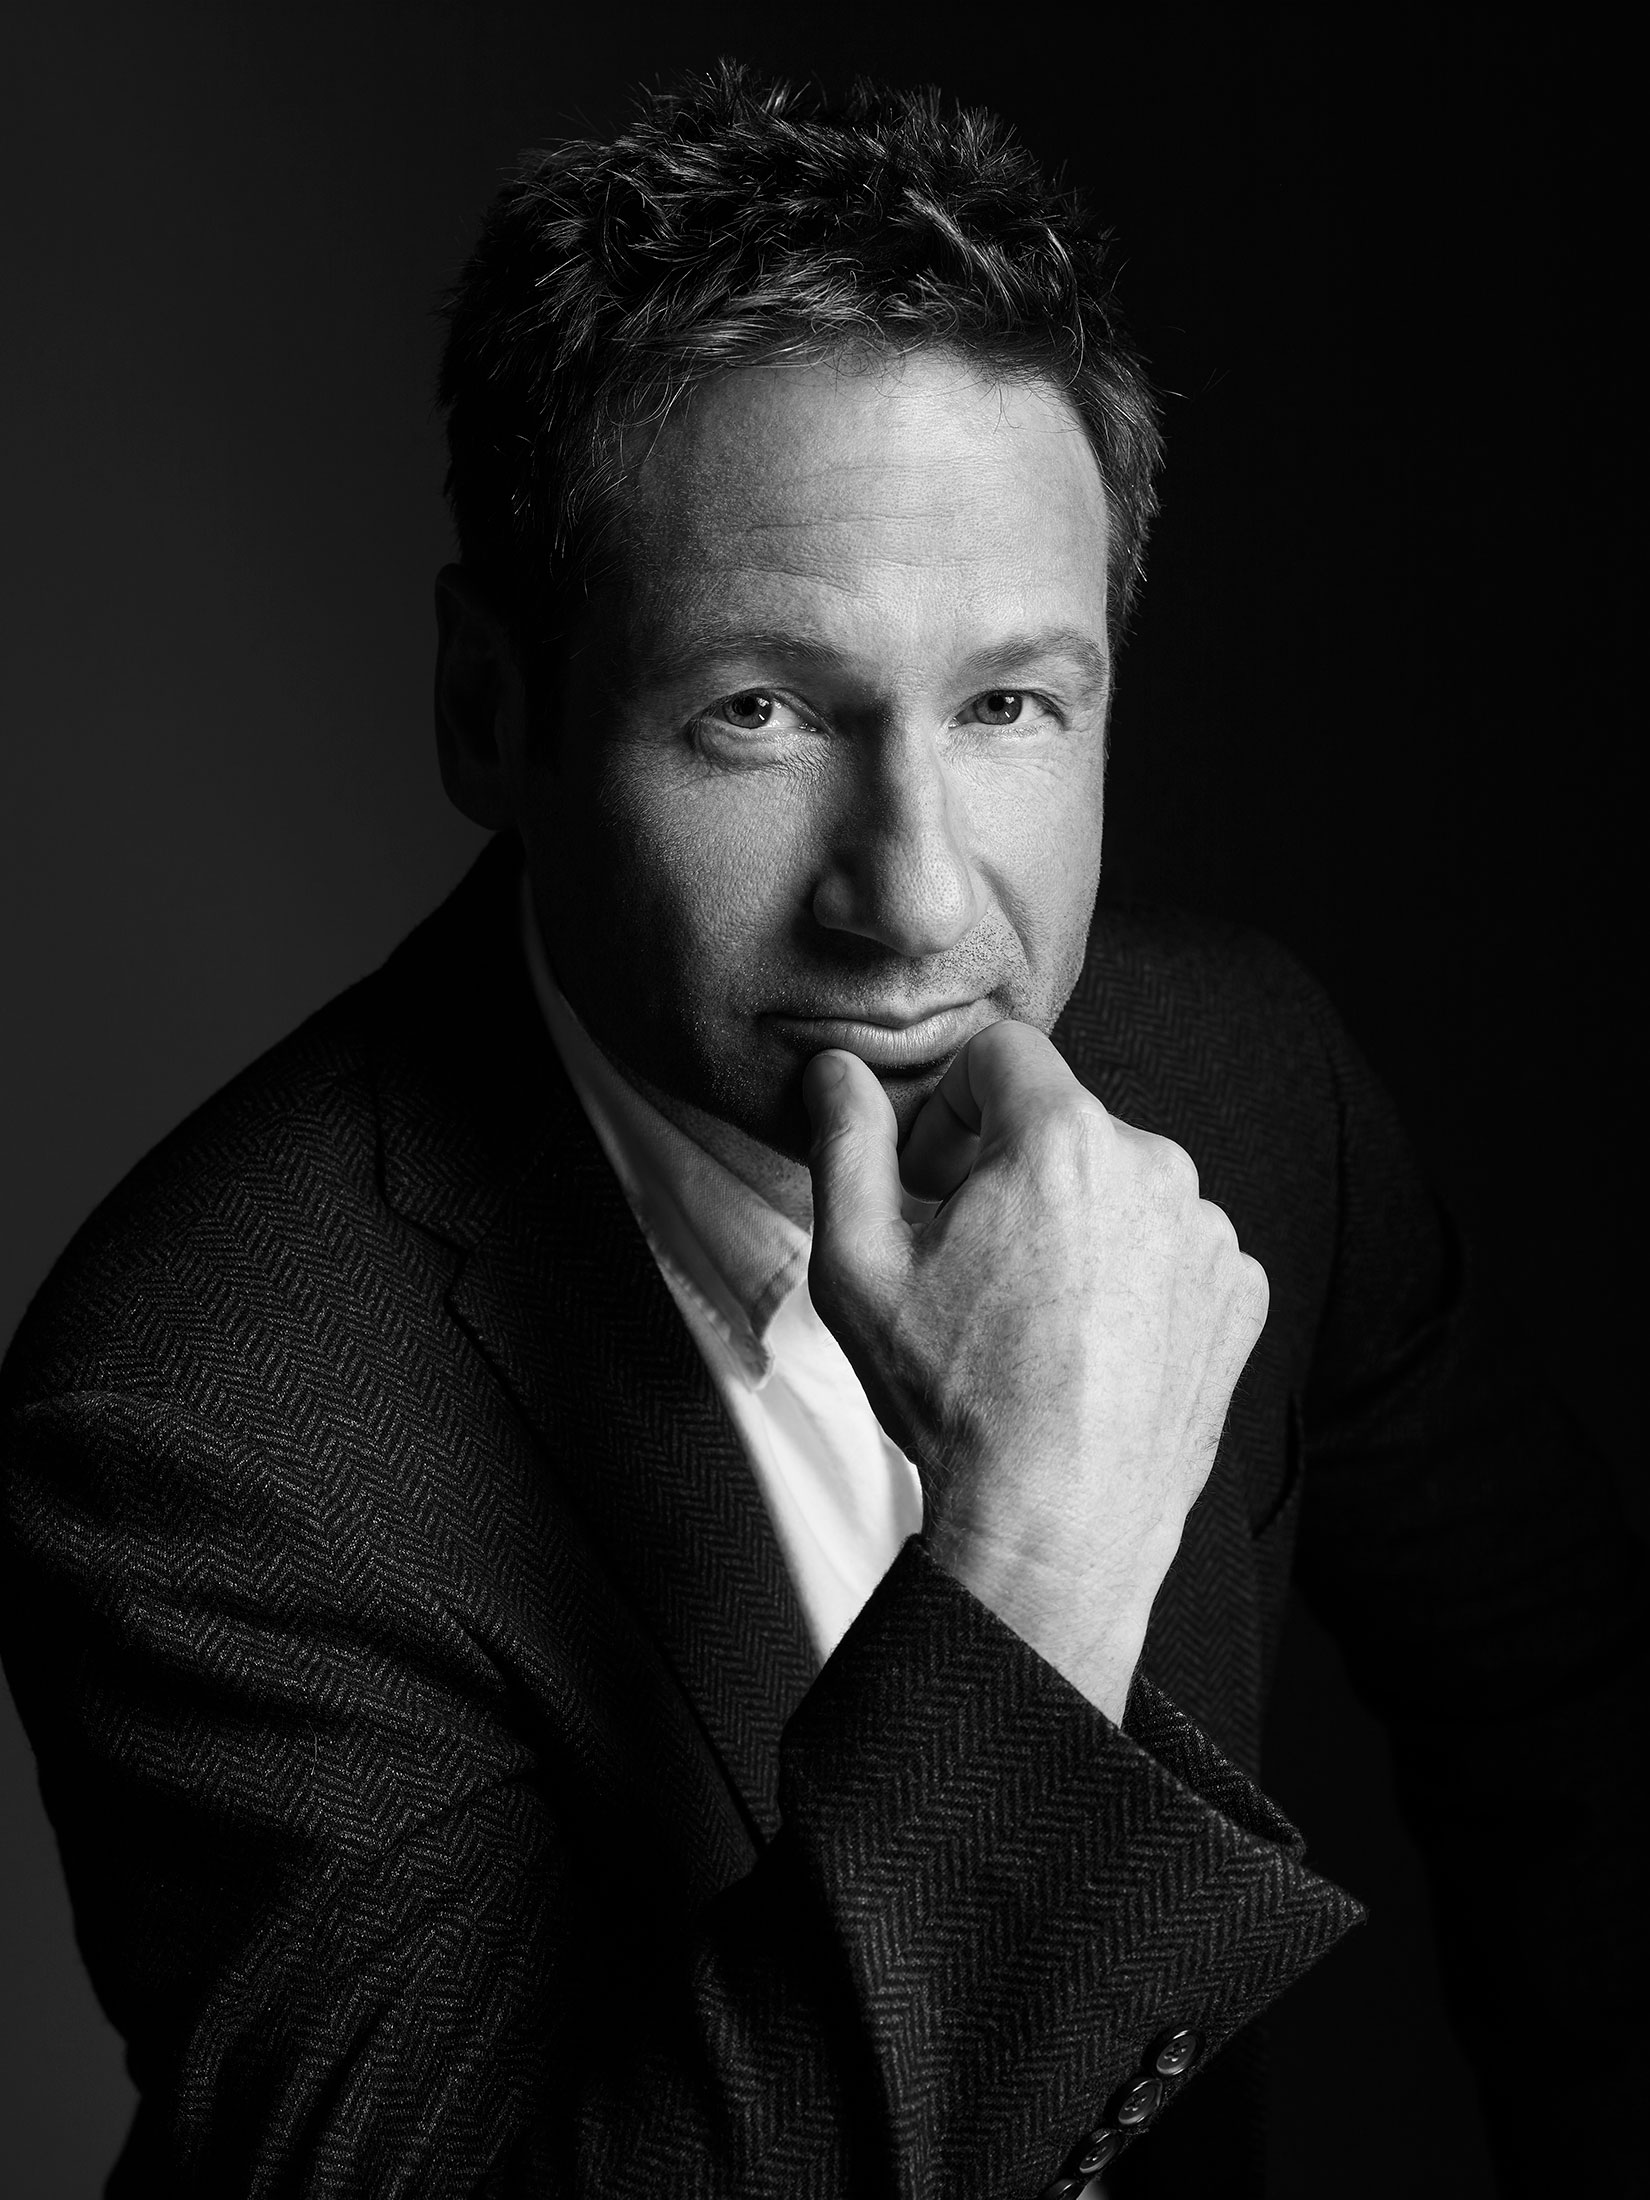 David_Duchovny_by-robert-ascroft